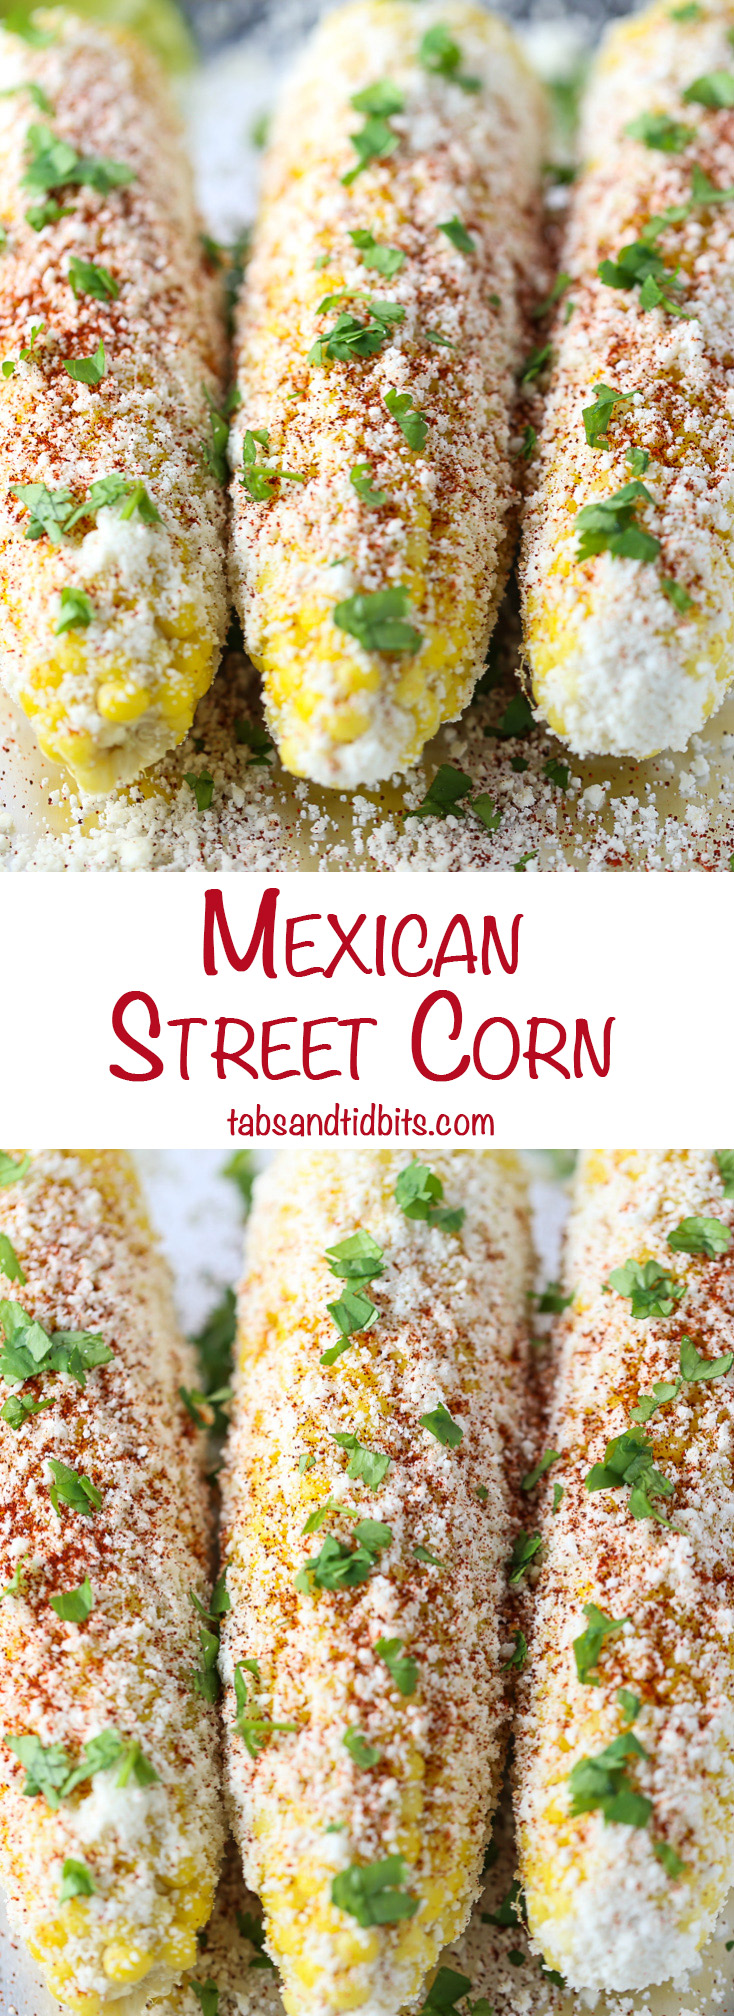 Mexican Street Corn - Corn on the cob coated with garlic mayo, cotija cheese, chipotle chili powder, cilantro and a squeeze of fresh lime juice.